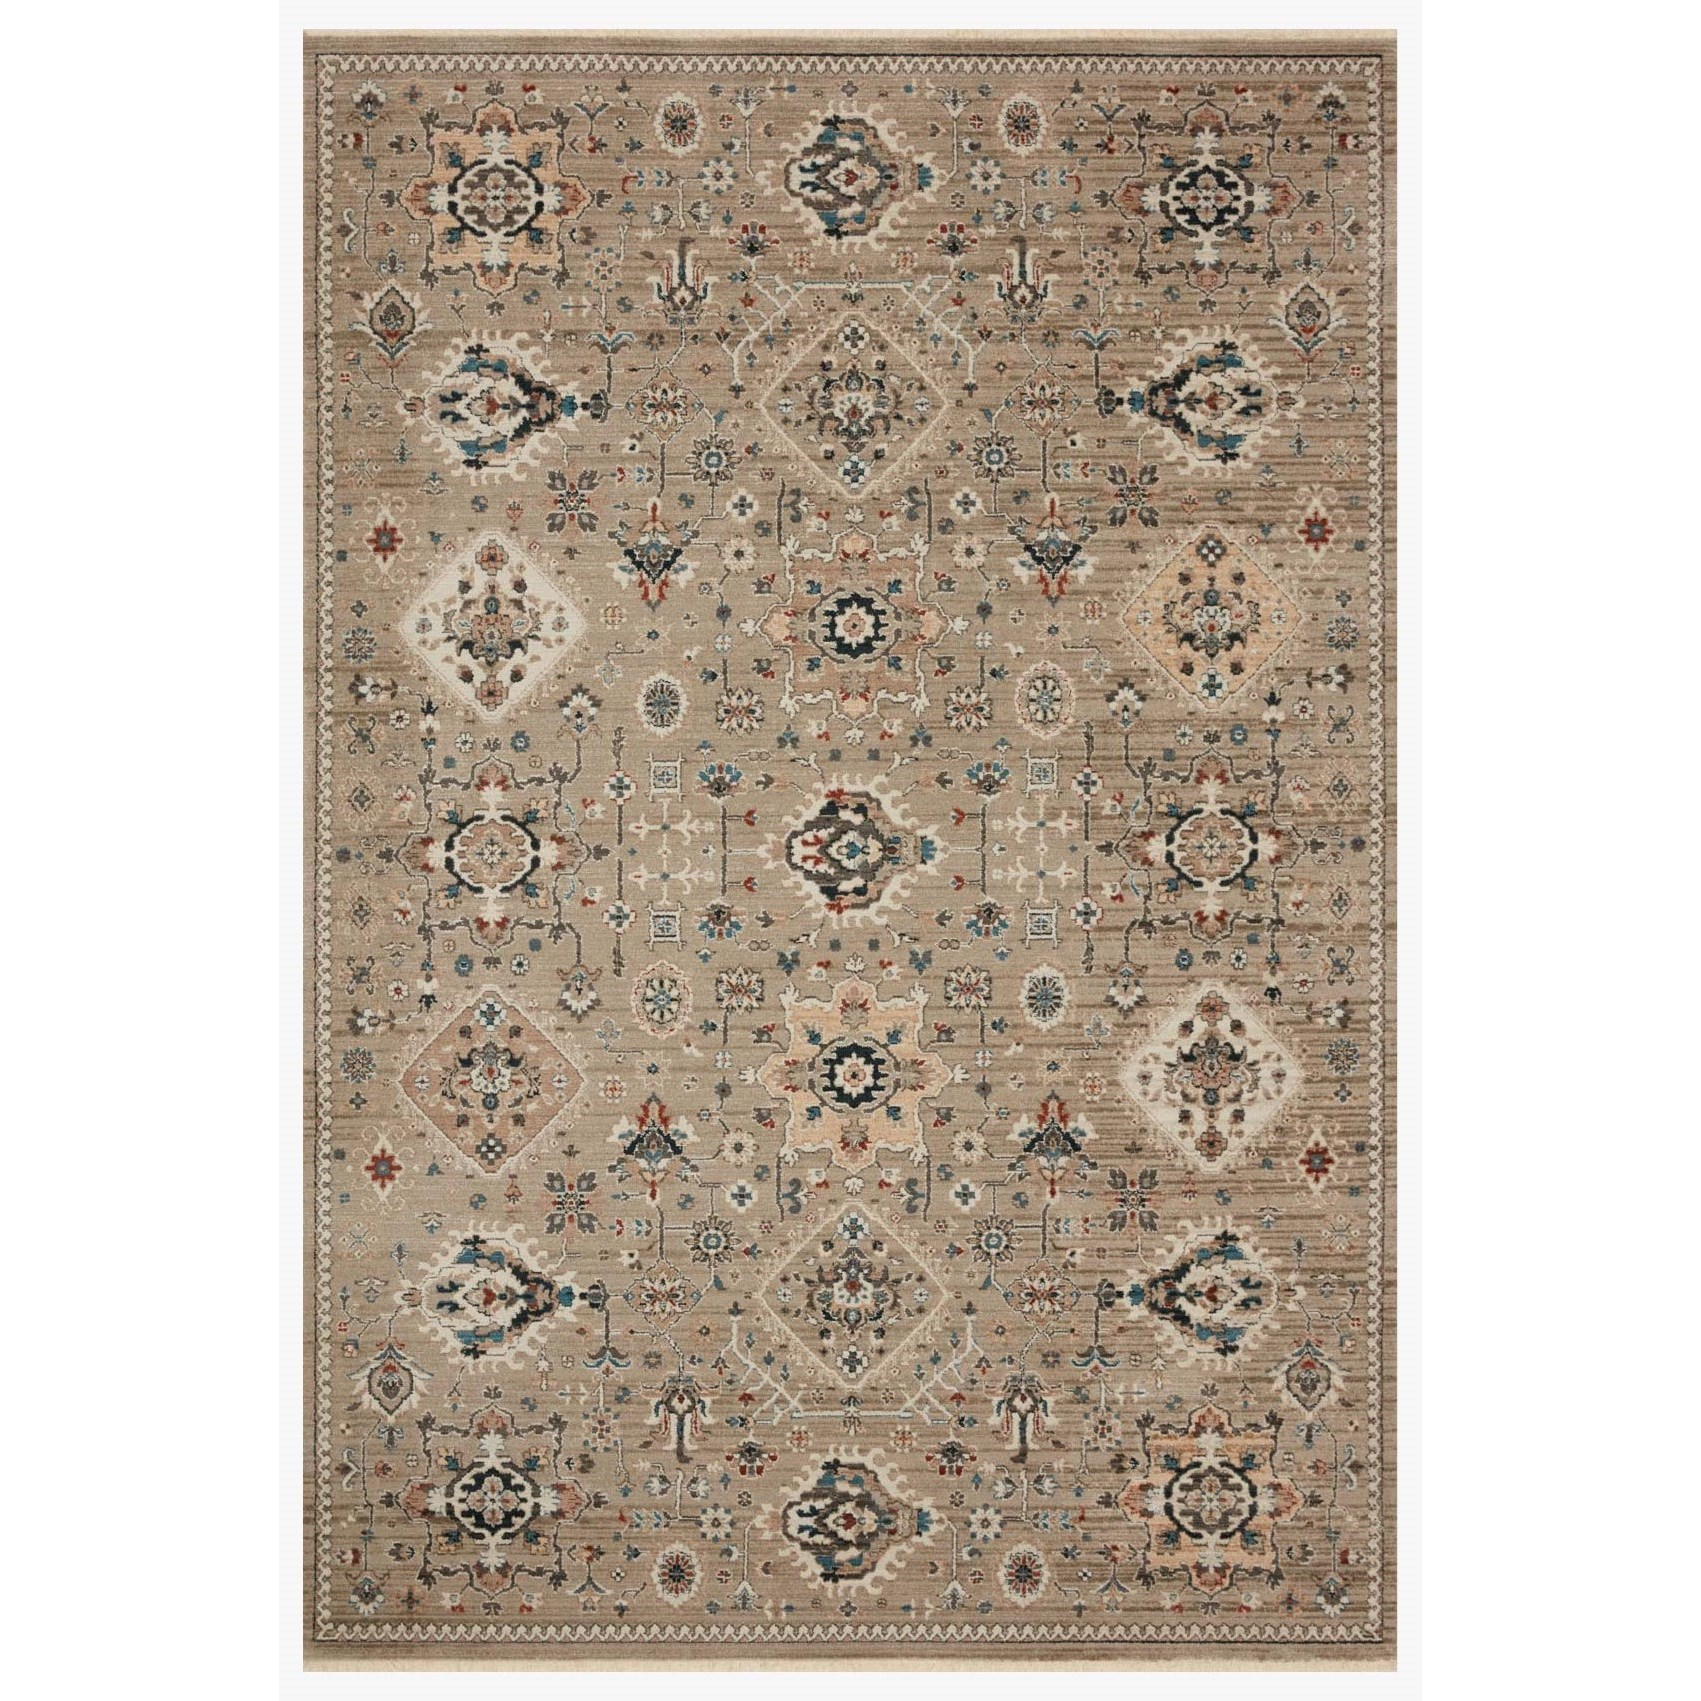 "Leigh 6'7"" x 9'6"" Dove / Multi Rug by Loloi Rugs at Sprintz Furniture"